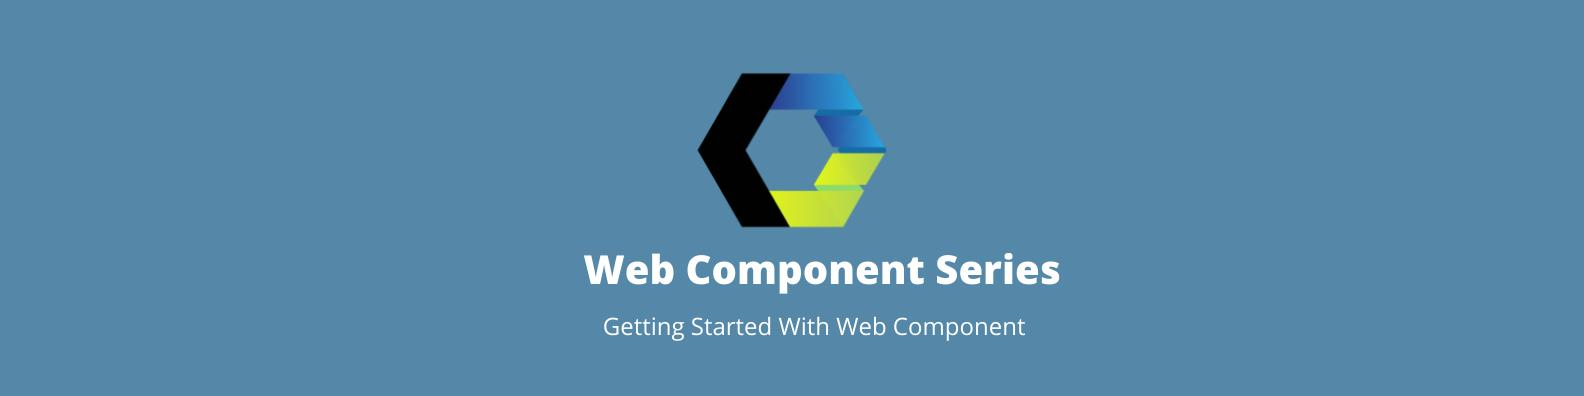 Getting started with Web components